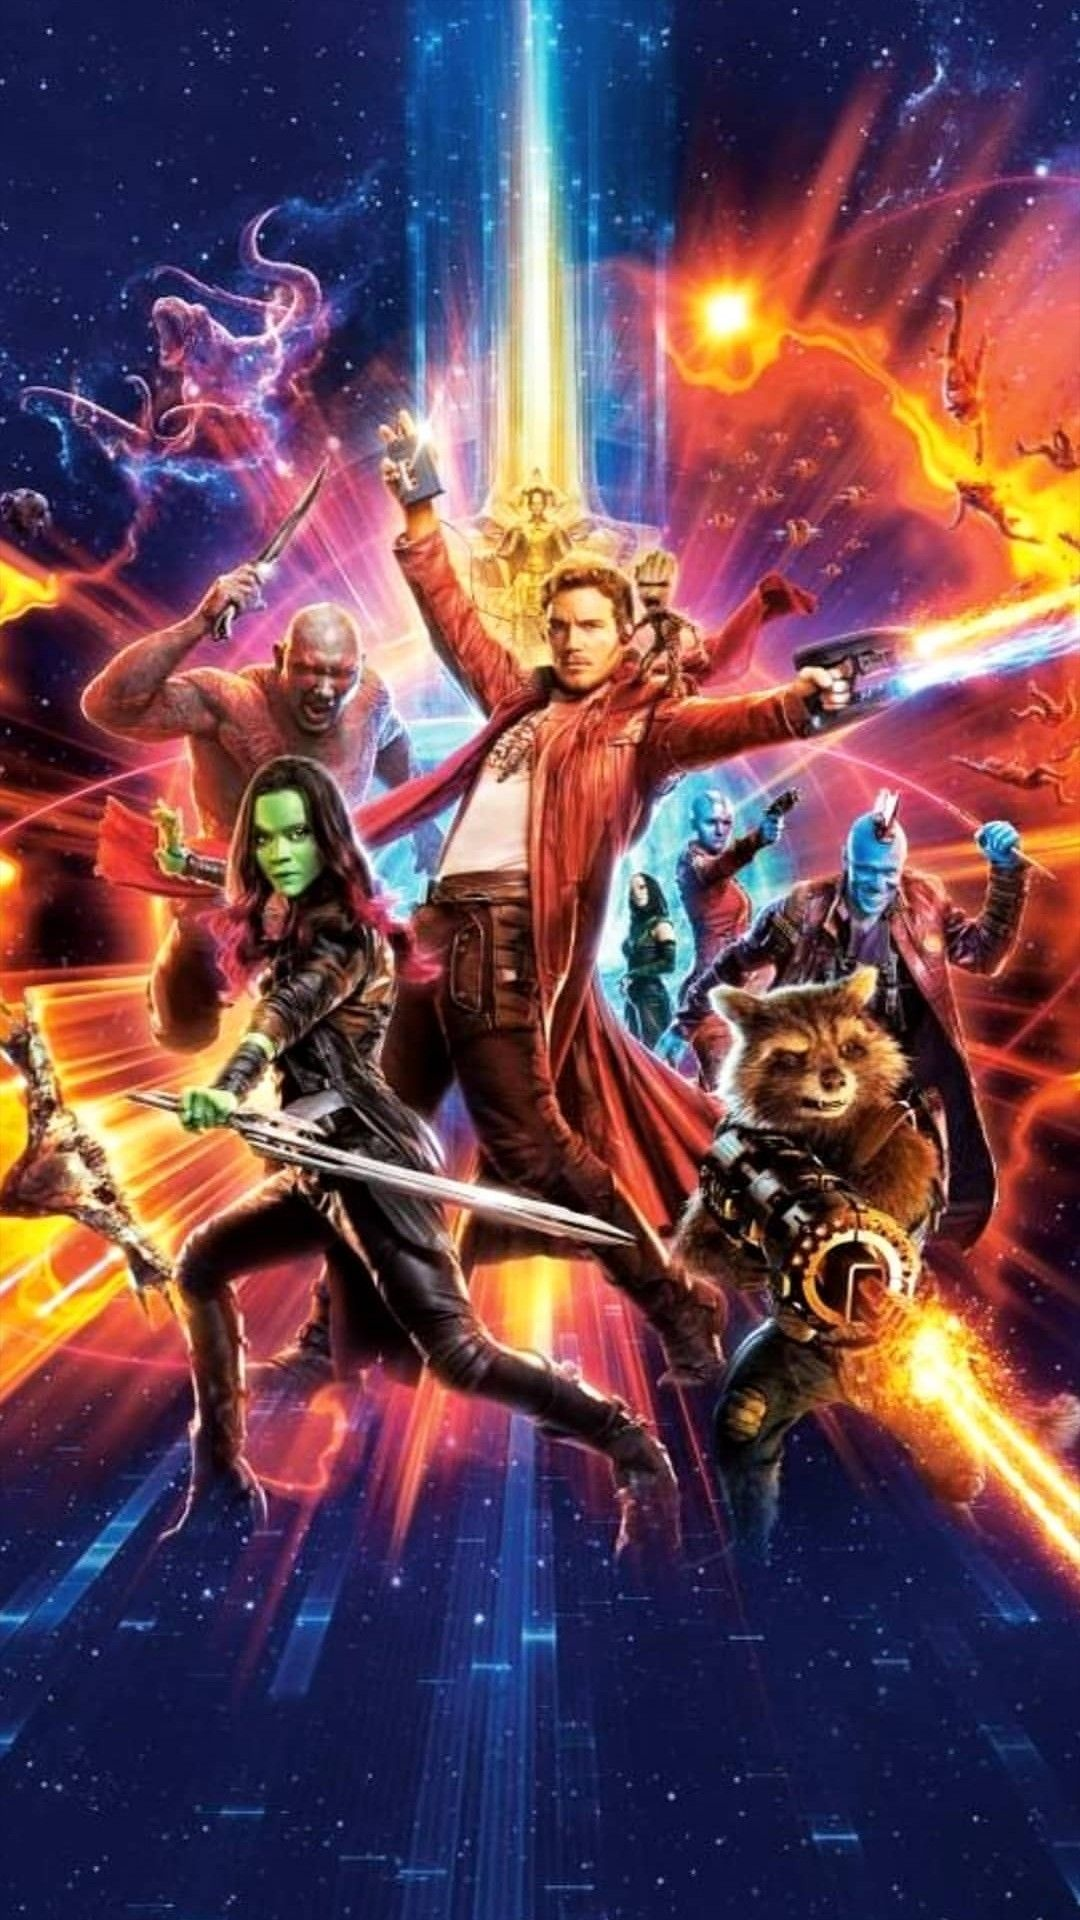 Guardians Of The Galaxy Capas De Filmes Guardioes Da Galaxia Marvel